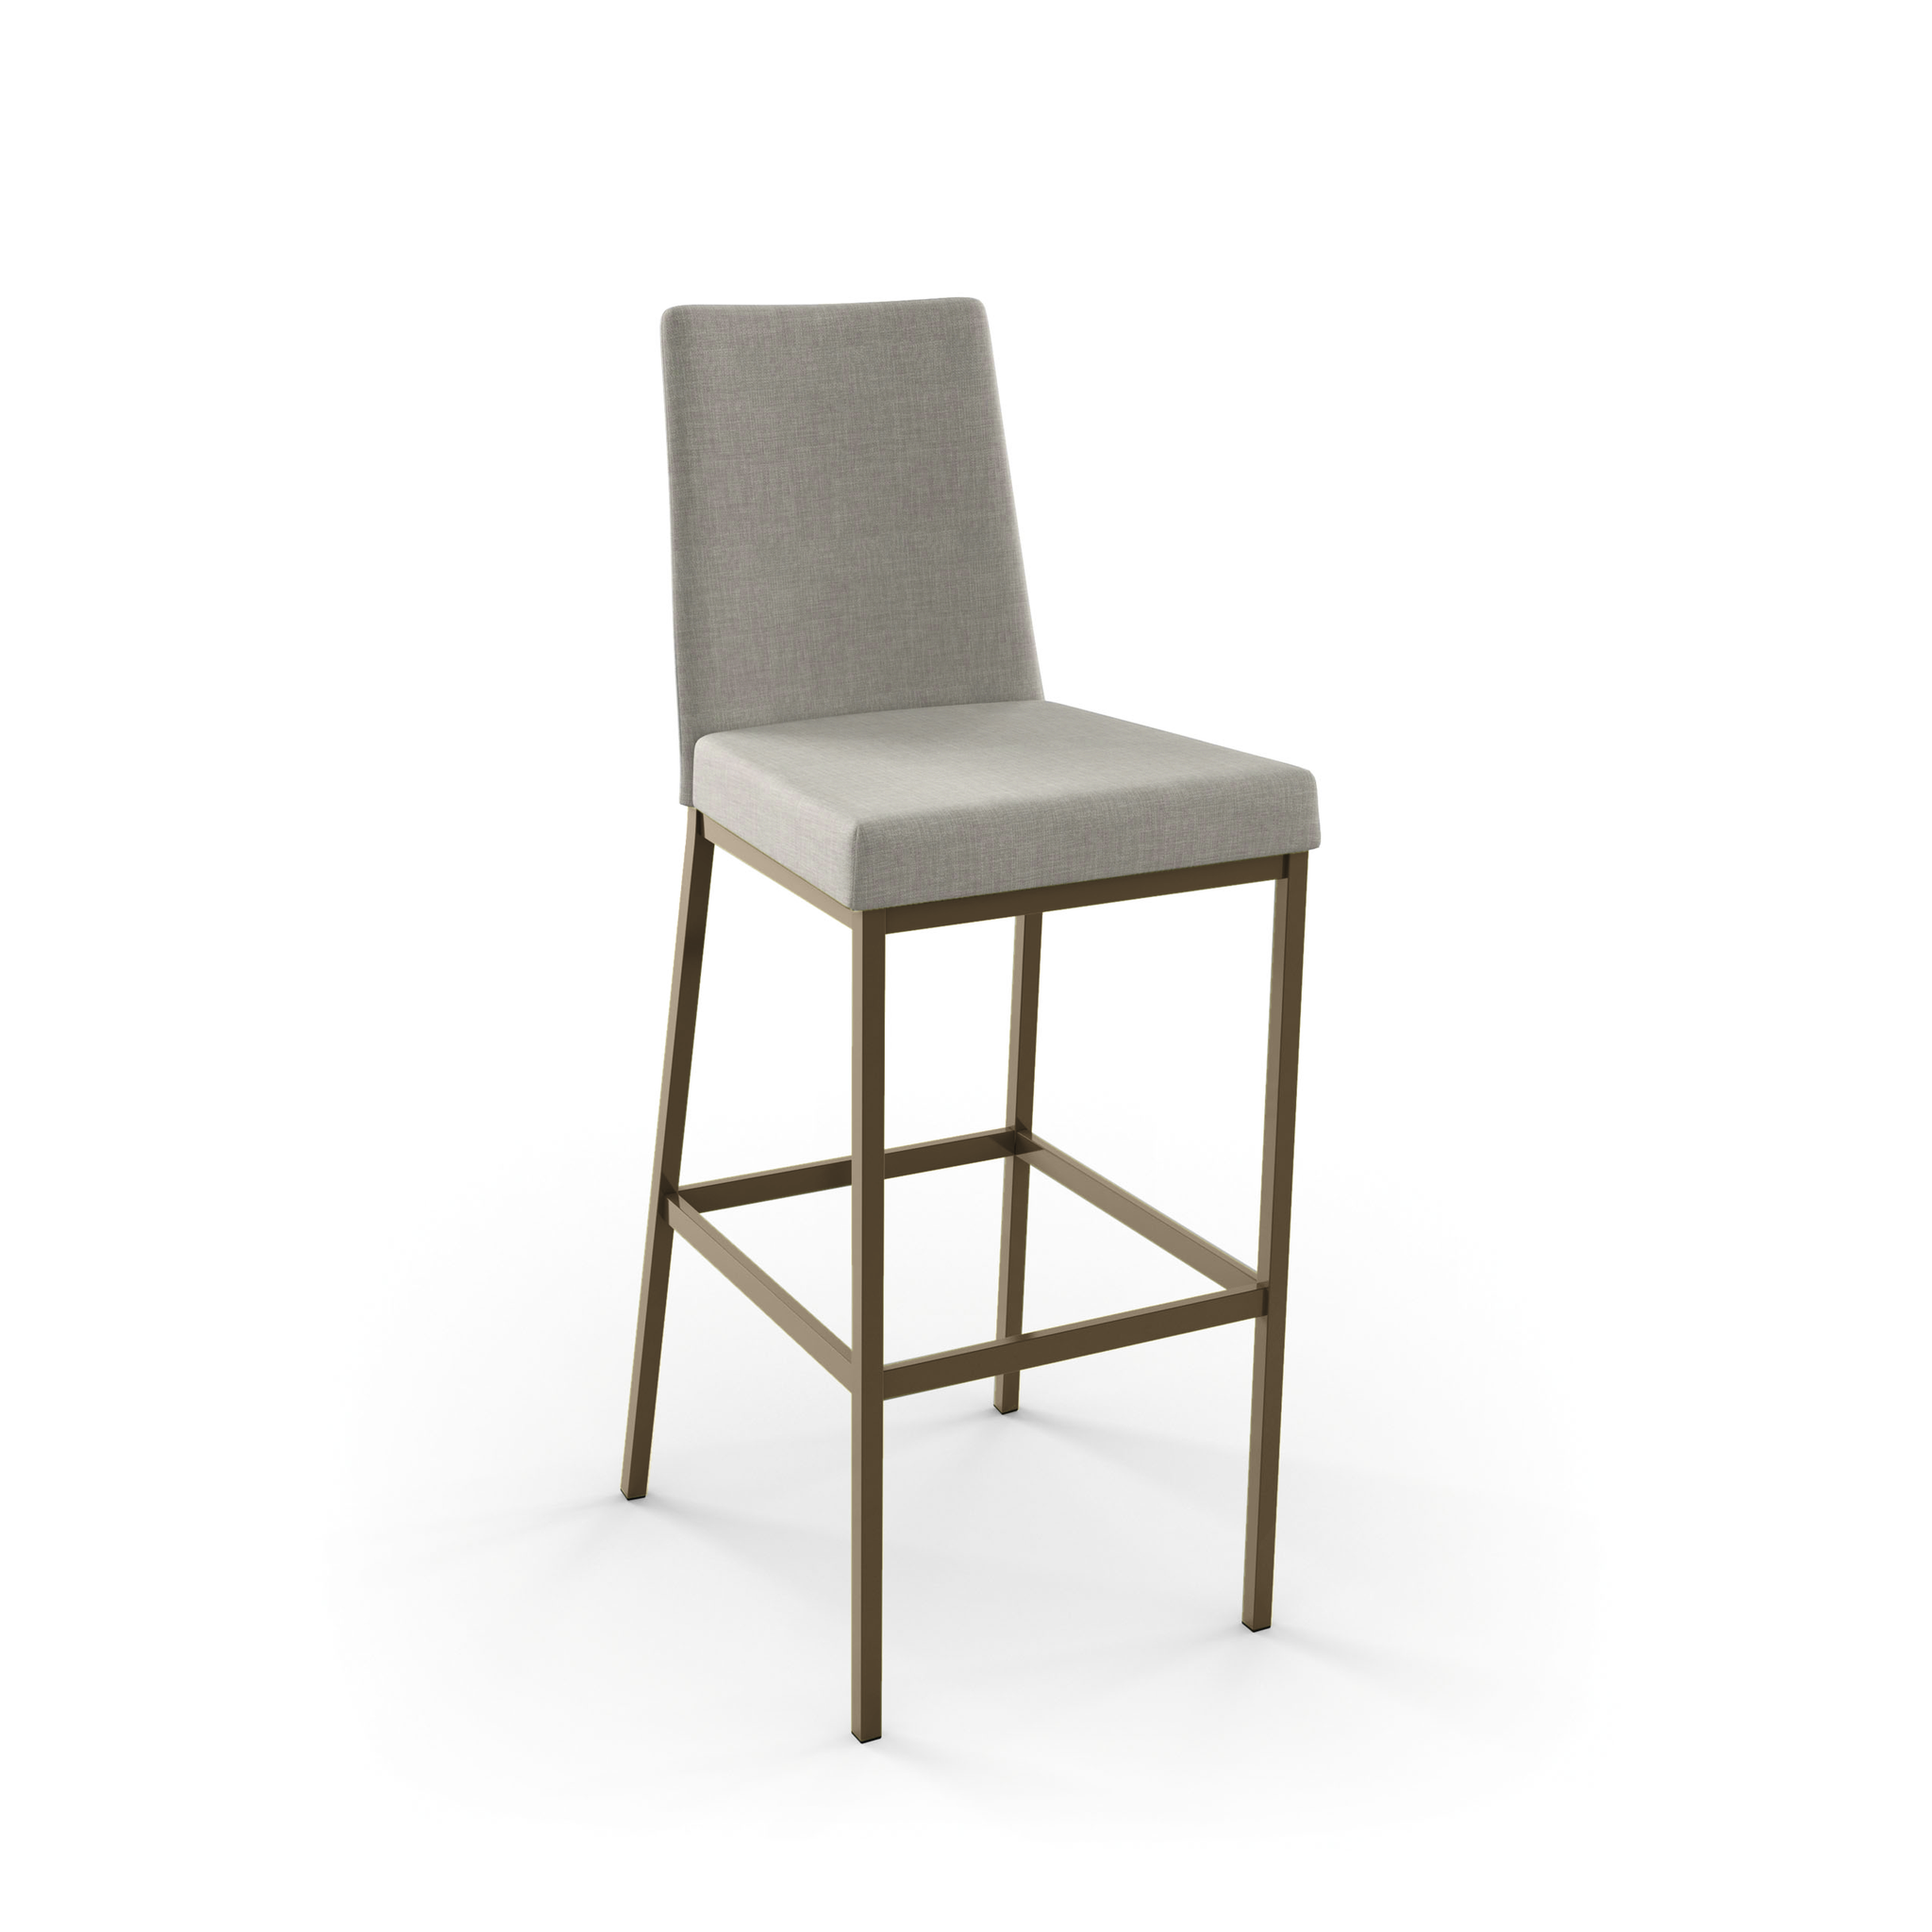 Picture of Linea Stool - Non-Swivel